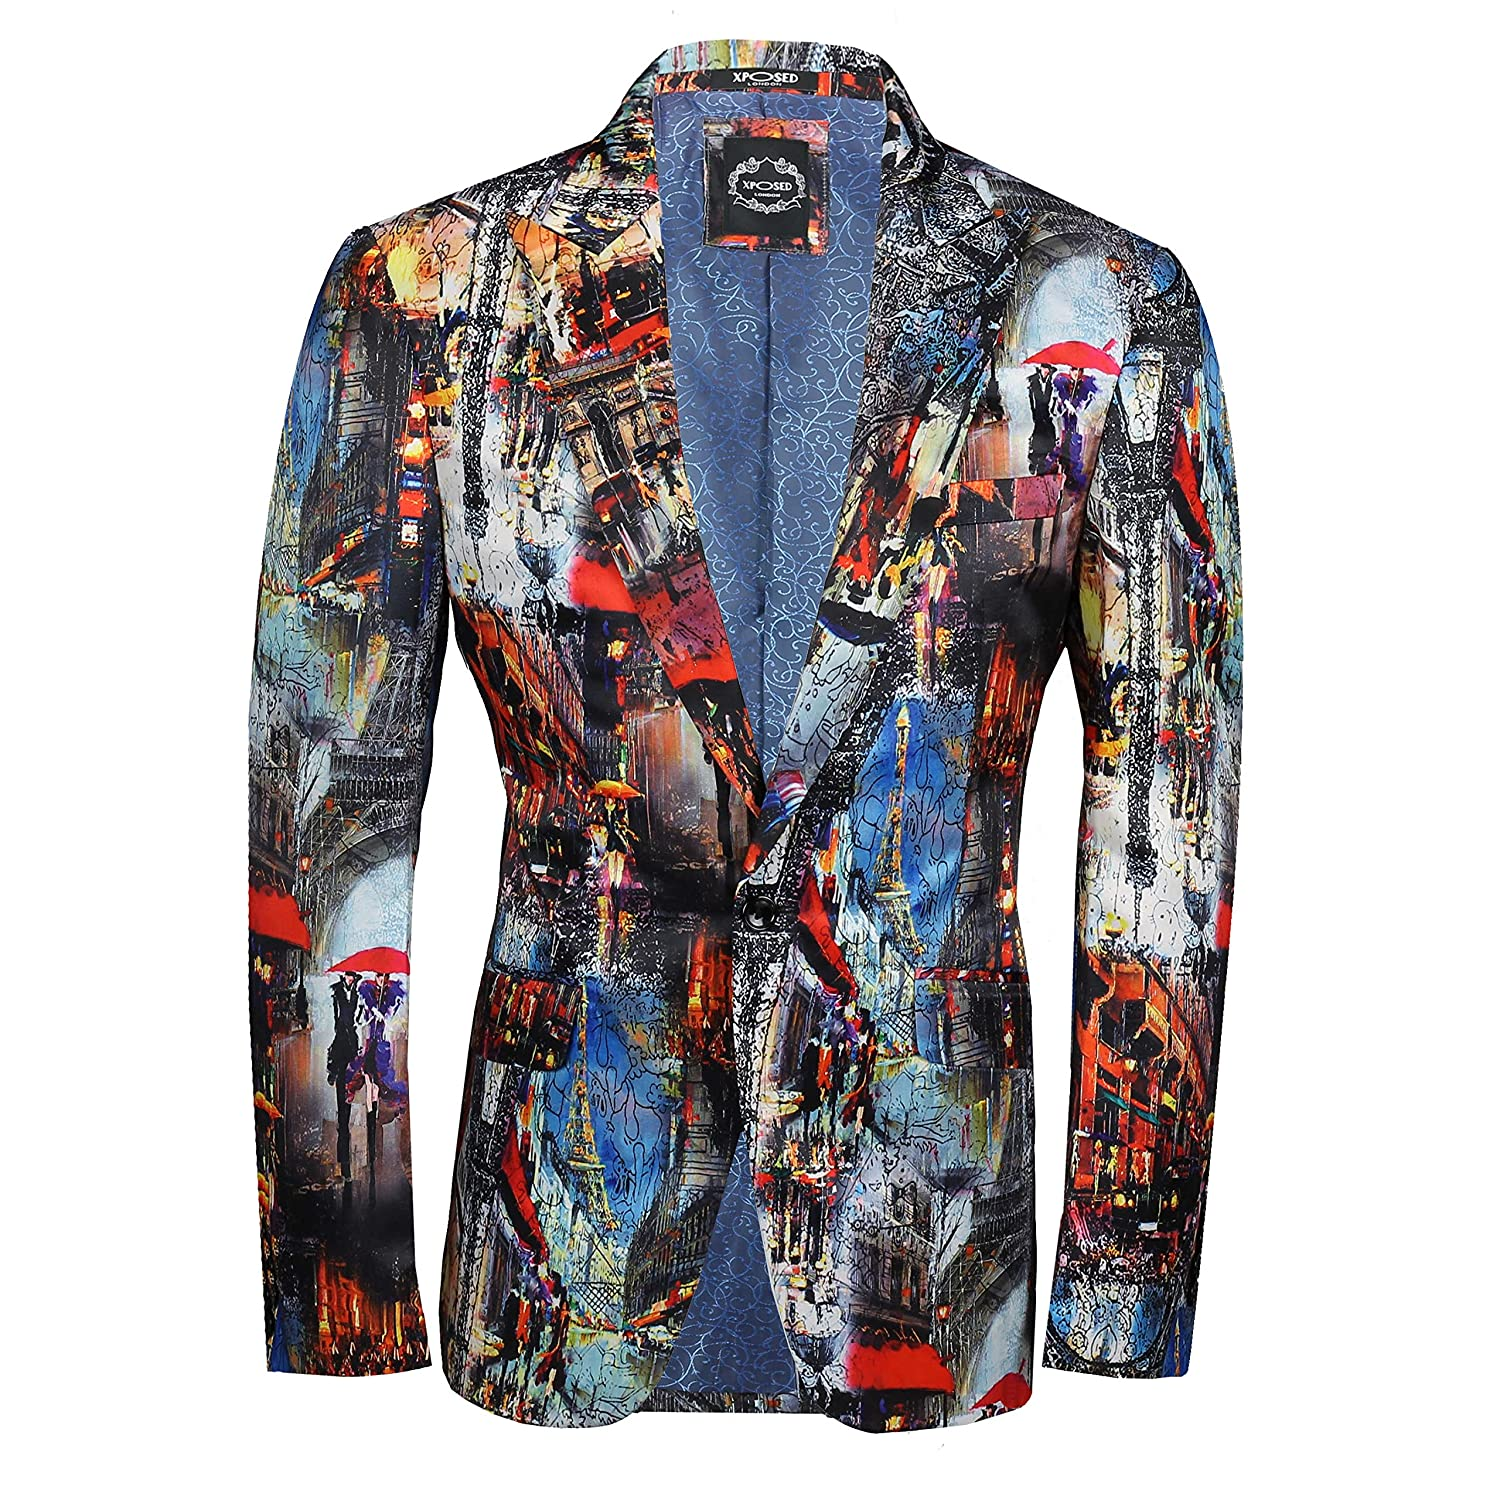 Xposed Mens Party Wear Colourful Printed Blazer Retro Vintage Slim Fit Designer Style Jacket